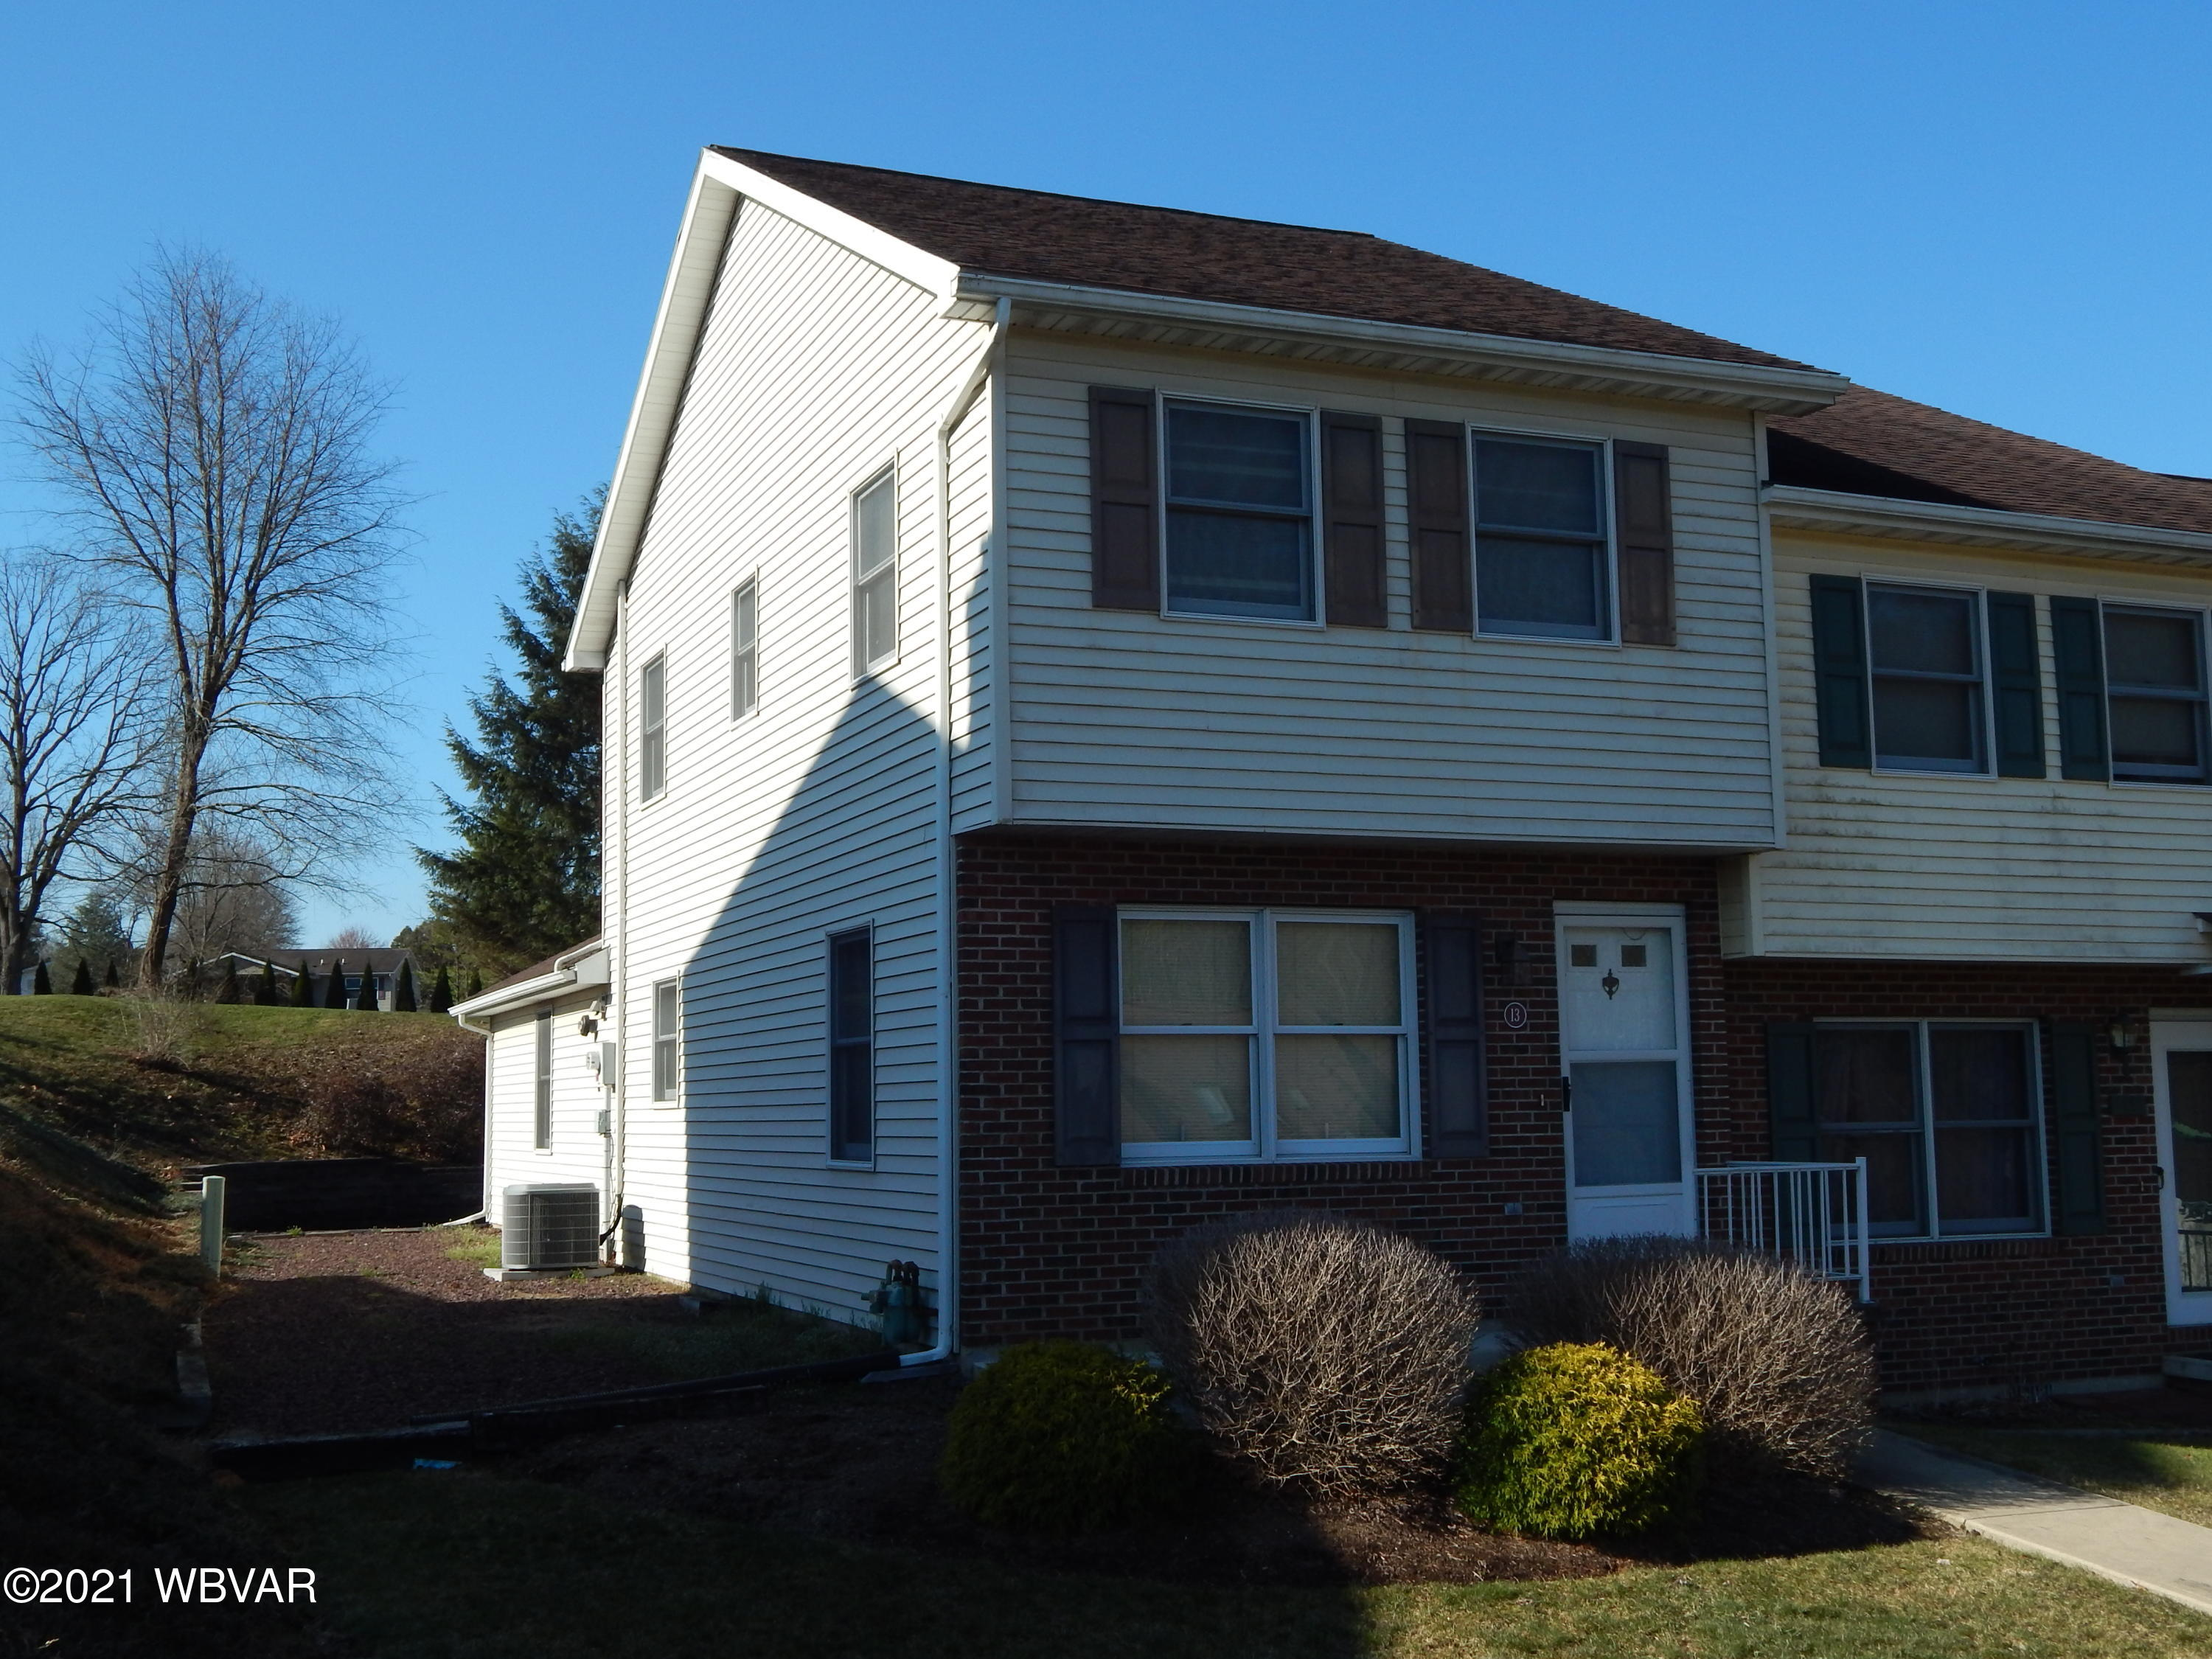 13 HOOVER STREET, Williamsport, PA 17701, 2 Bedrooms Bedrooms, ,2 BathroomsBathrooms,Residential,For sale,HOOVER,WB-92240